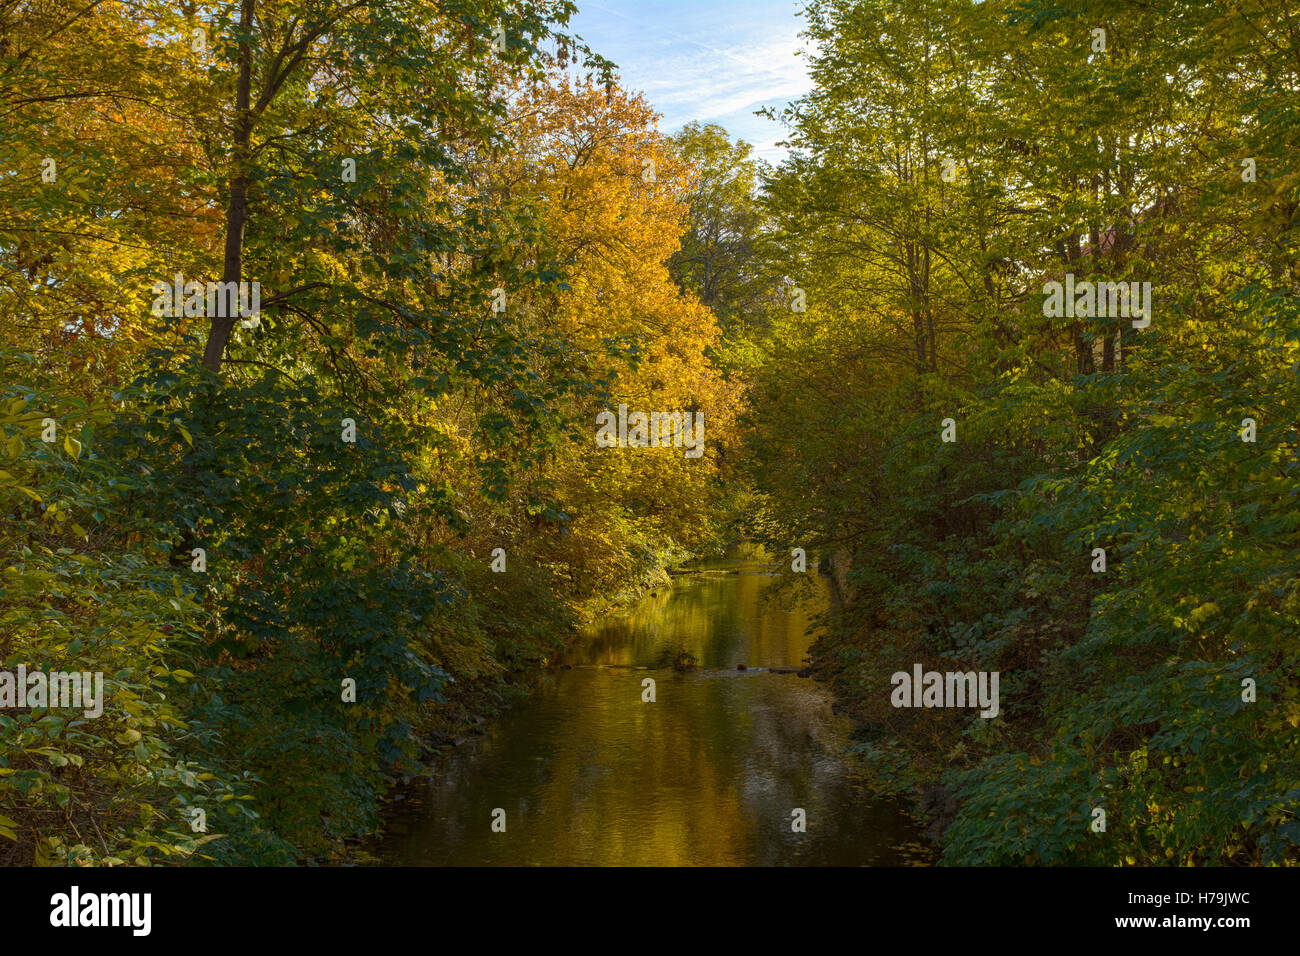 River and autumn trees - Stock Image